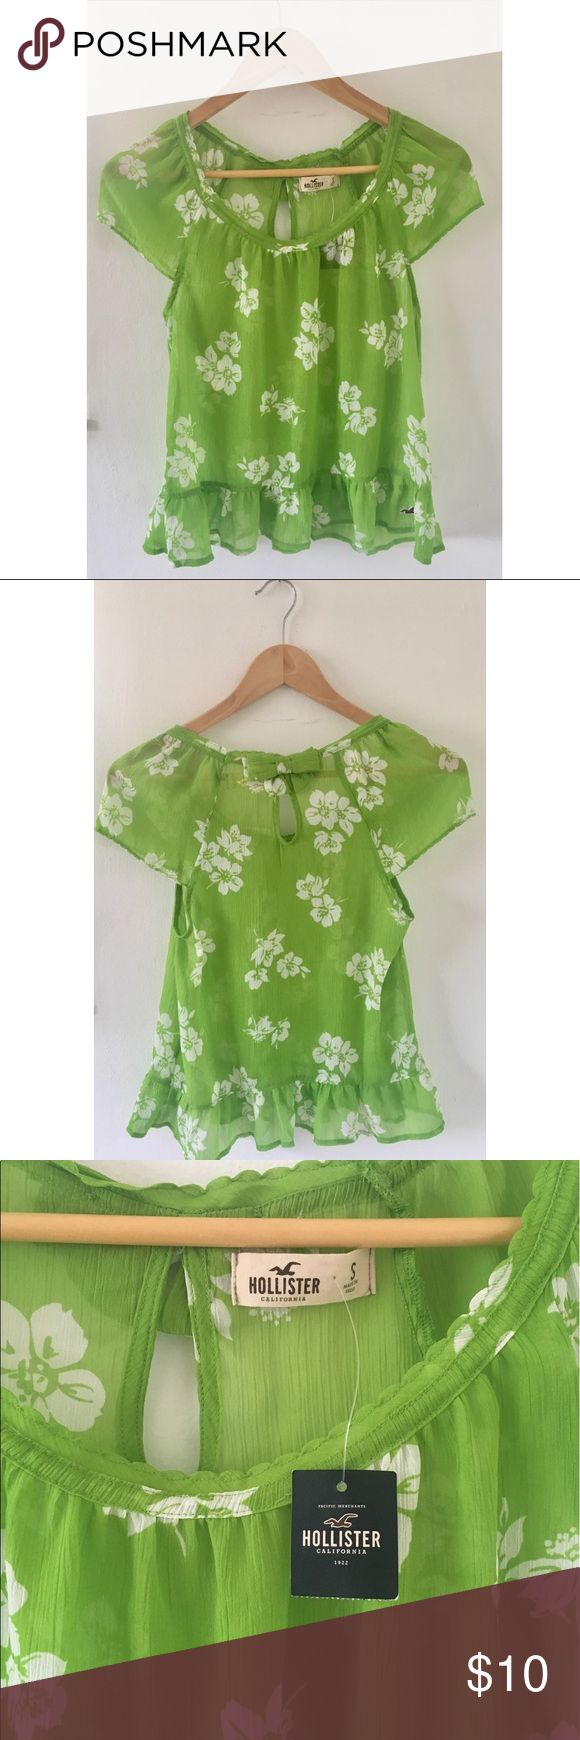 Hollister Lime Green Floral Sheer Short Sleeve Top Hollister Lime Green Floral Sheer Short Sleeve Peasant Blouse with small bow on the back. NWT Adorable with jeans or shorts. Size Small 🌻 Hollister Tops Blouses